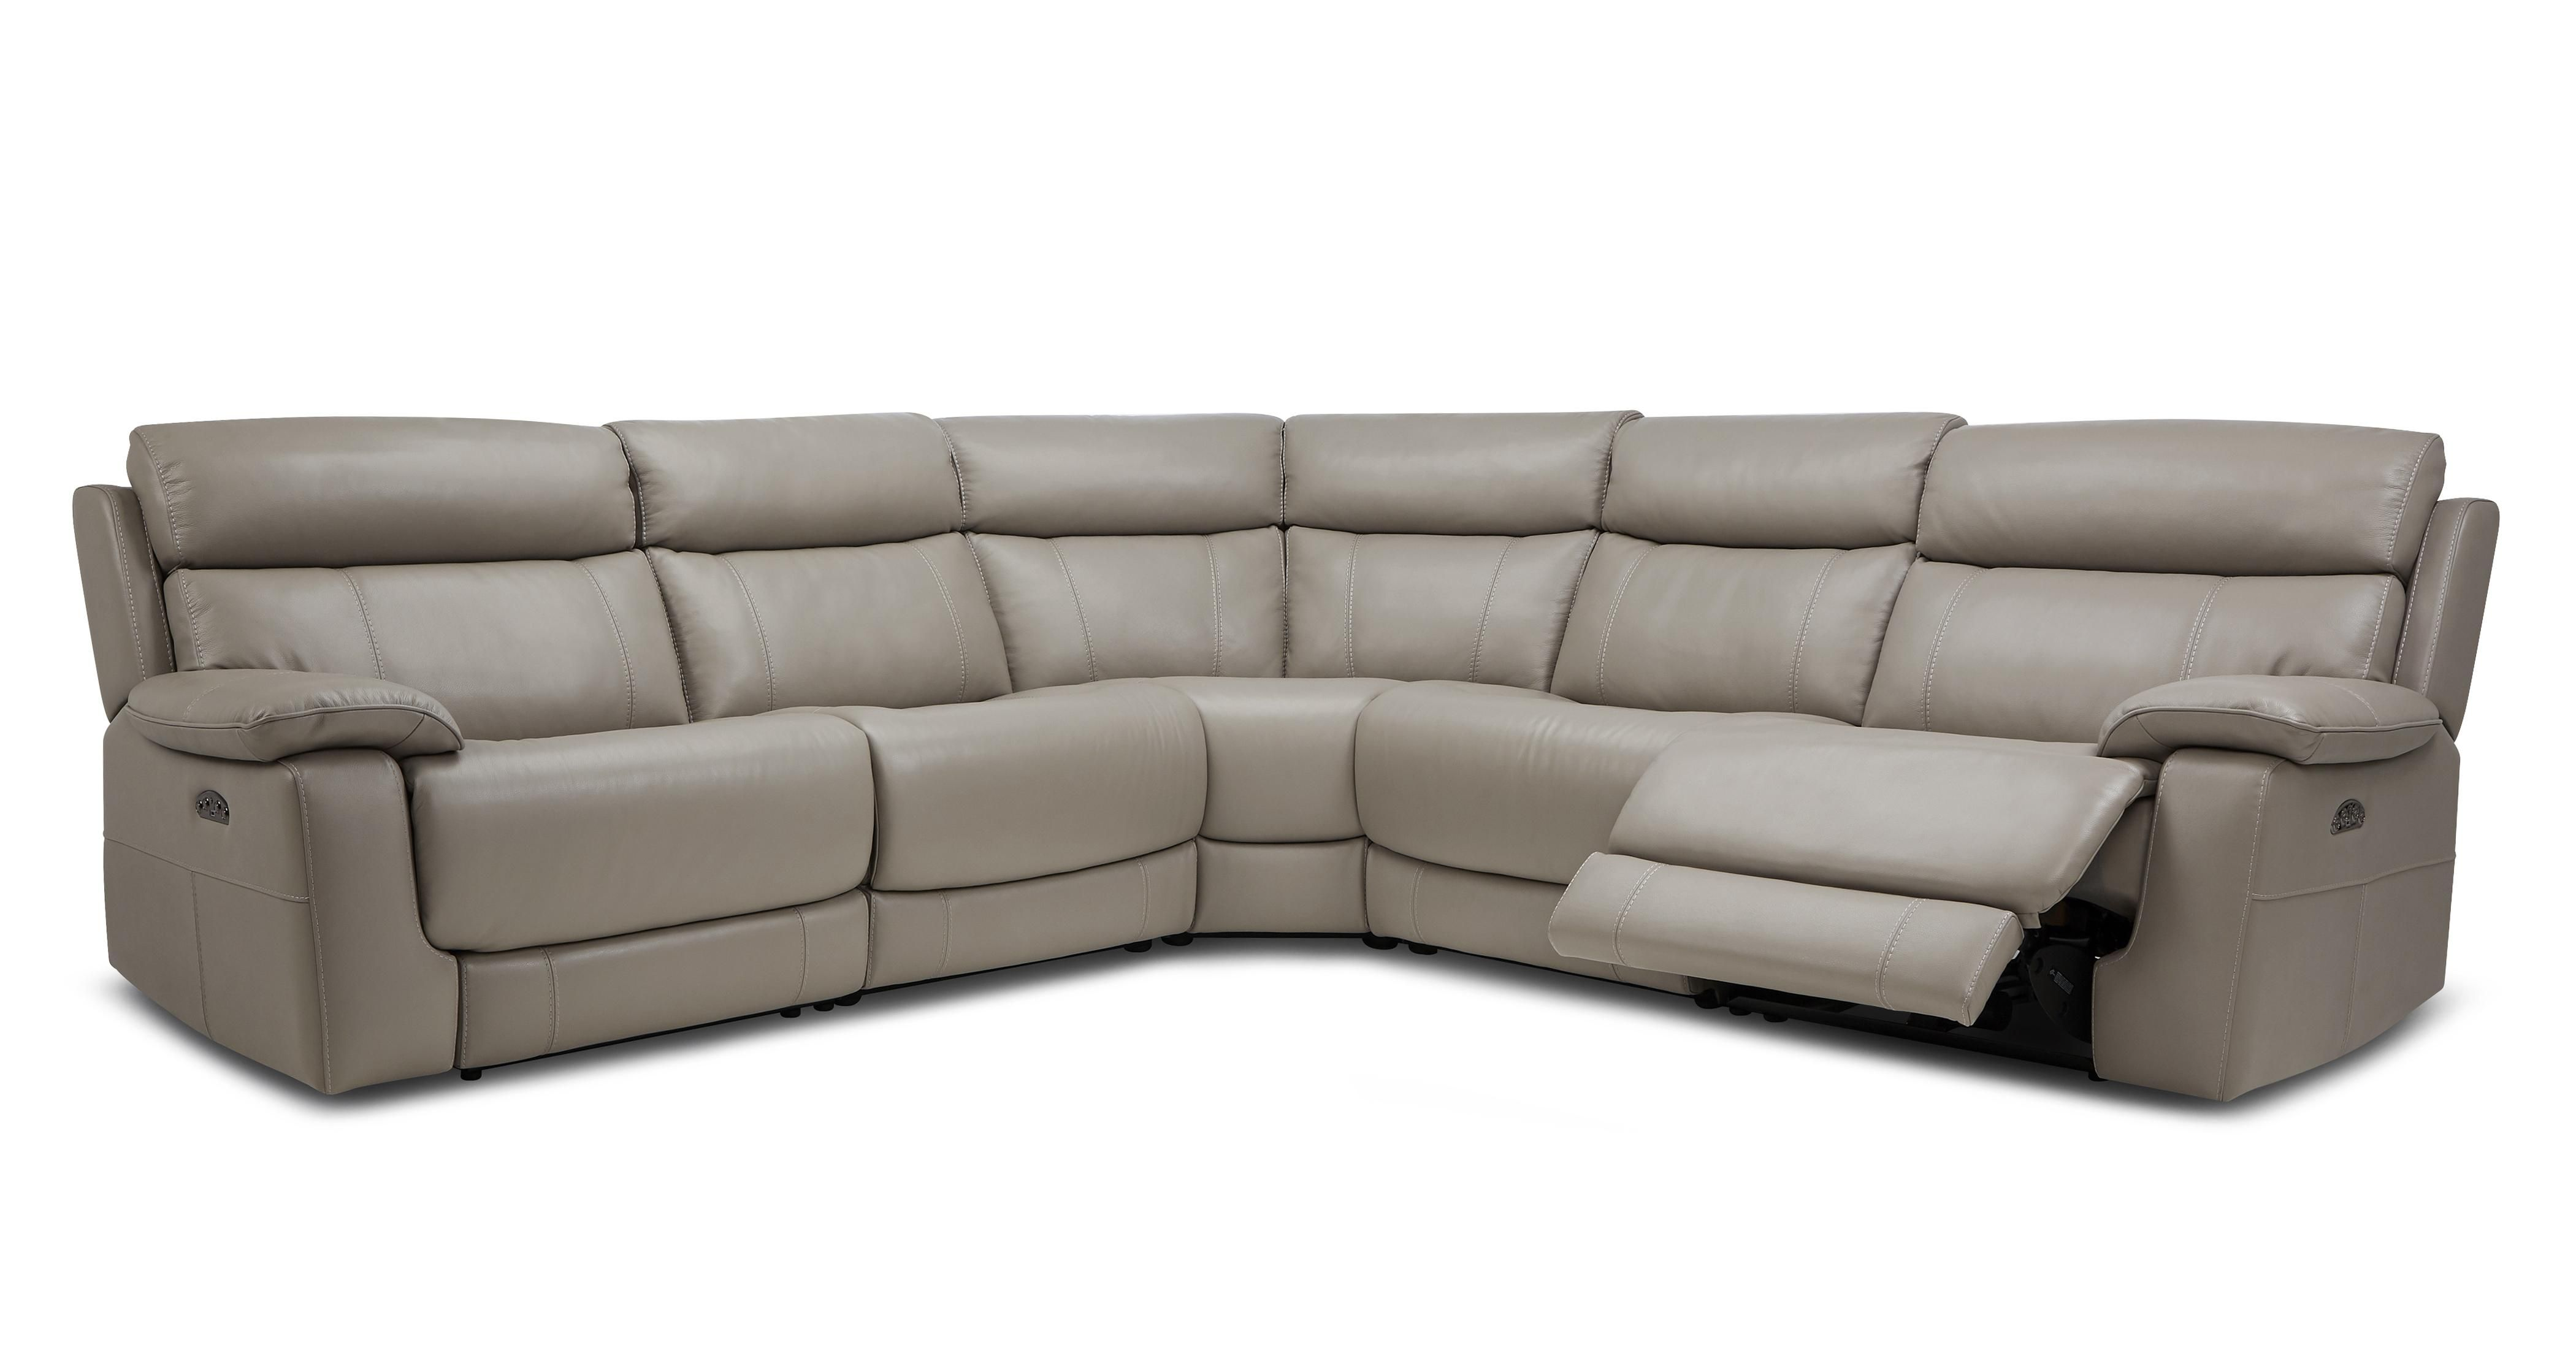 Dfs Option B 2 Corner 2 Power Plus Corner Lucius In 2020 Dfs Sofa Storage Footstool Sofa